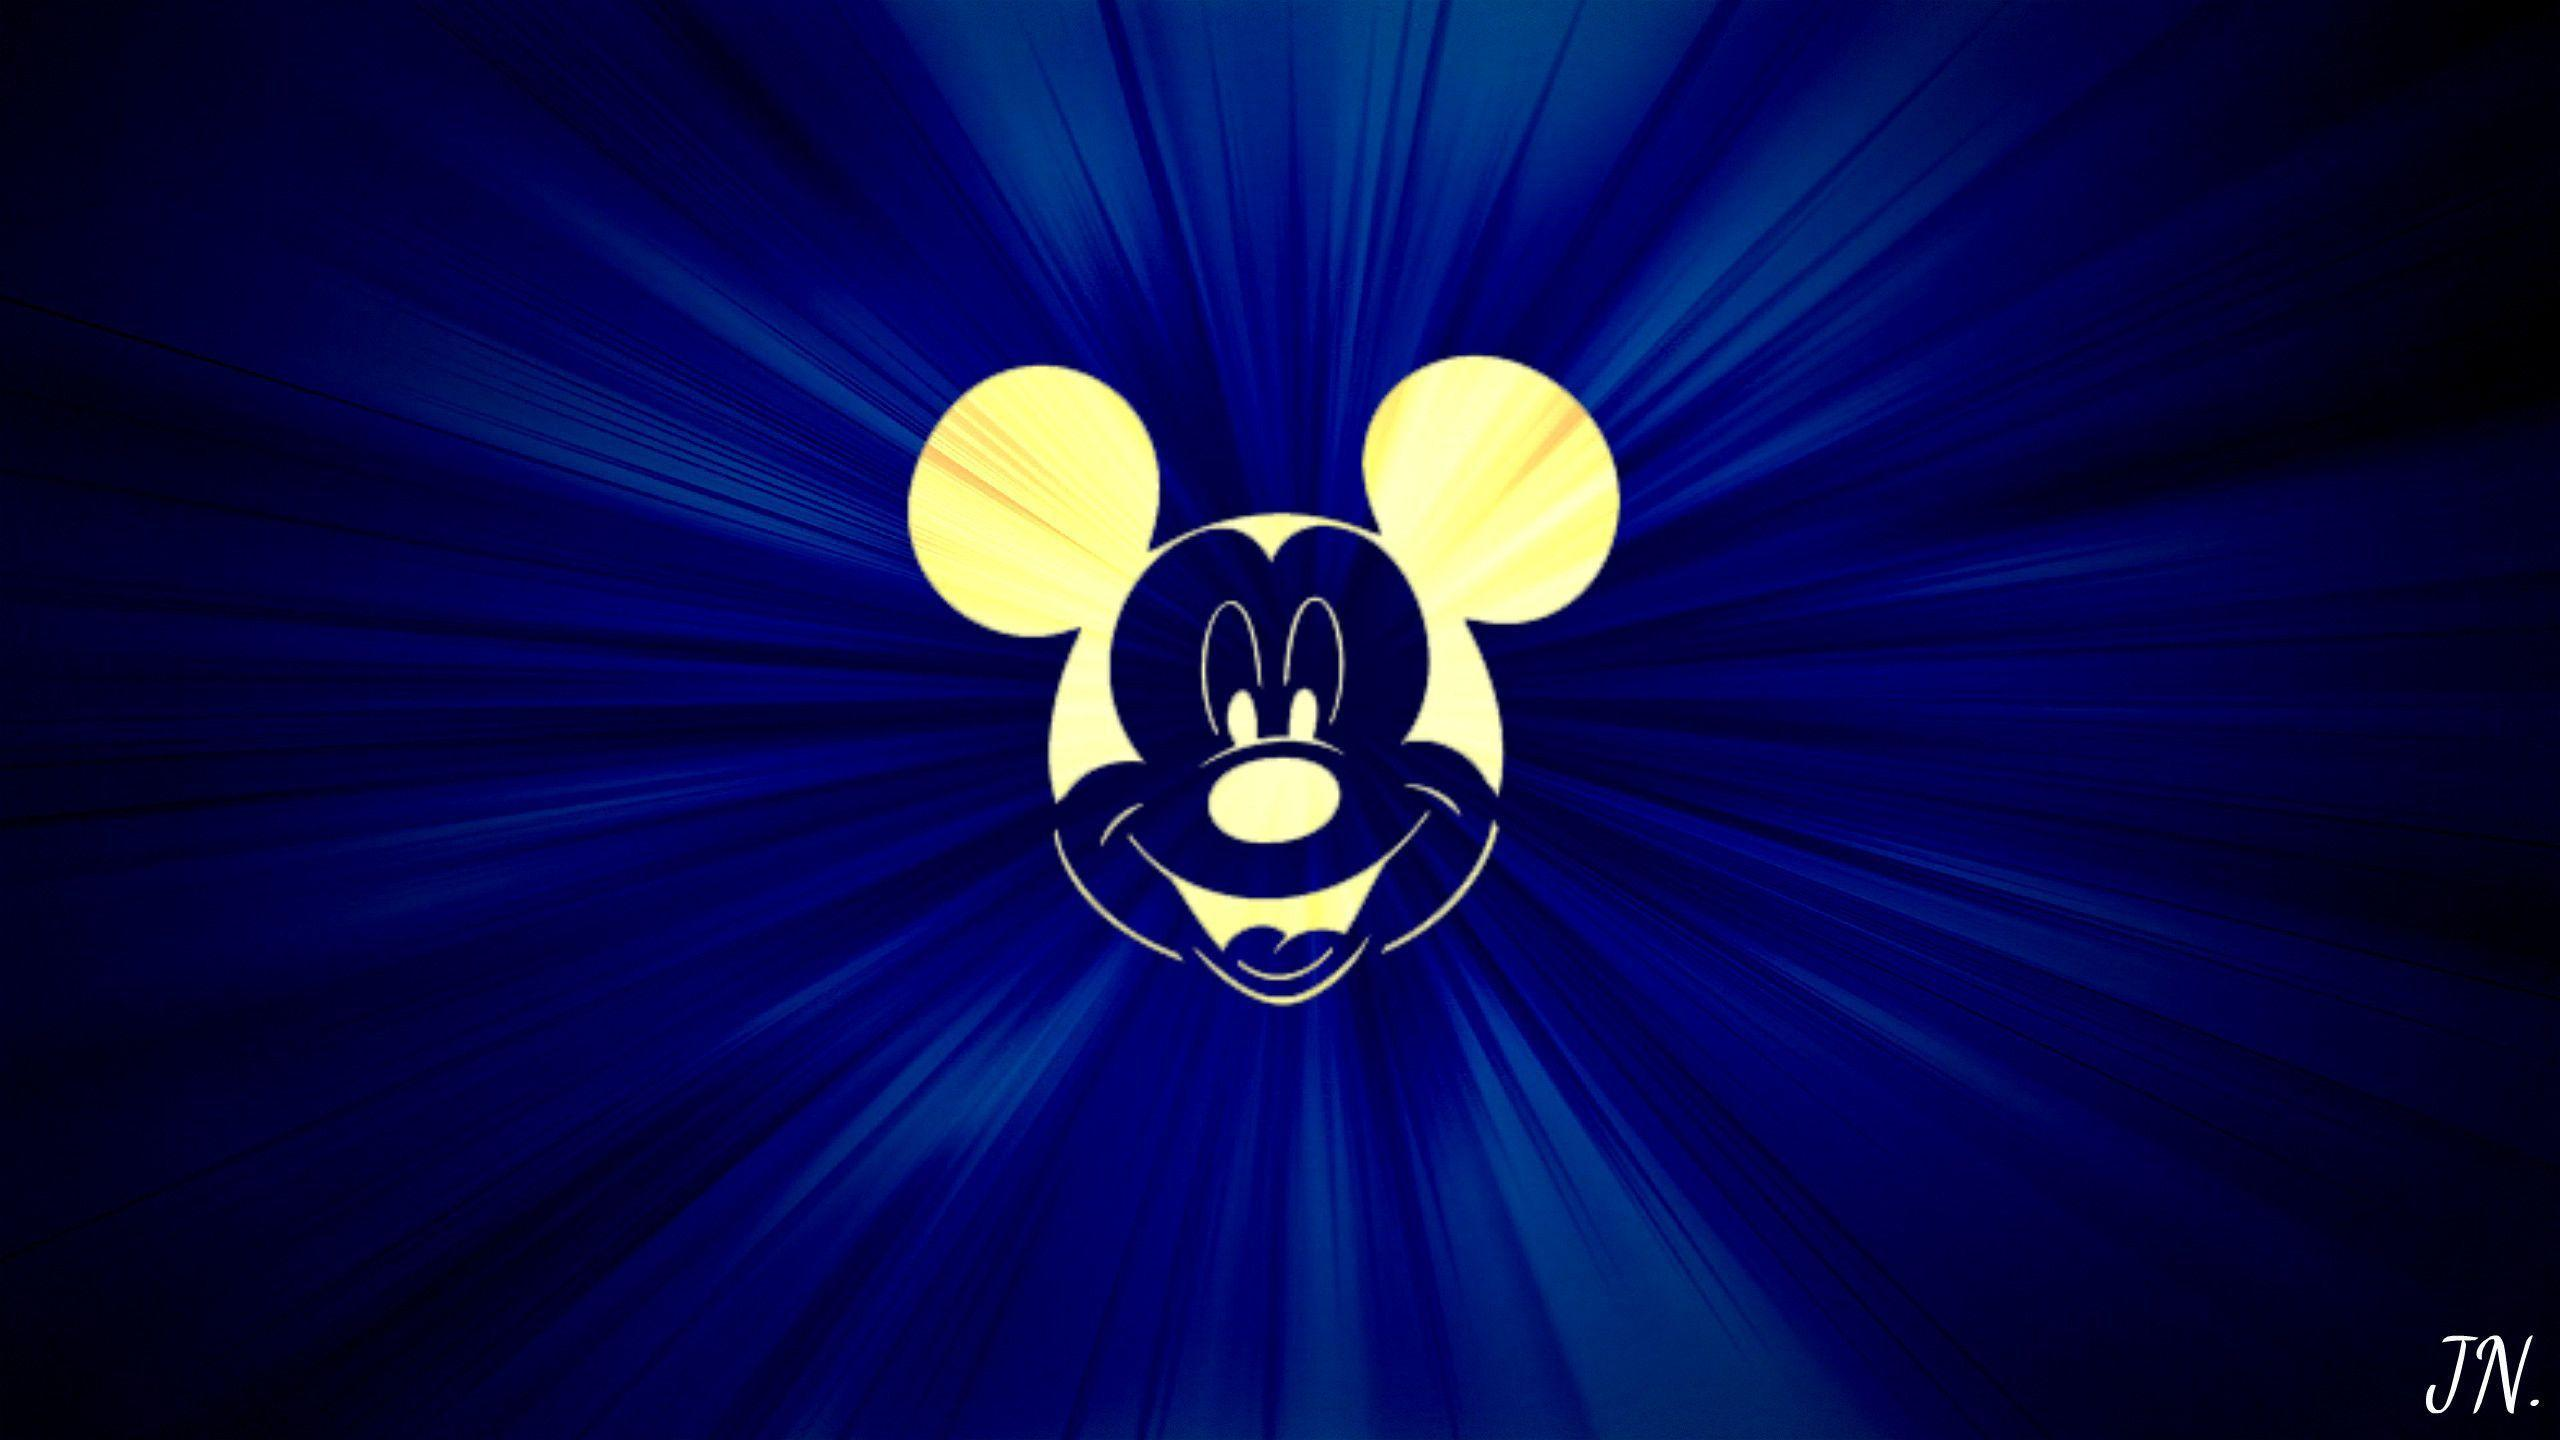 widescreen wallpapers of mickey - photo #7